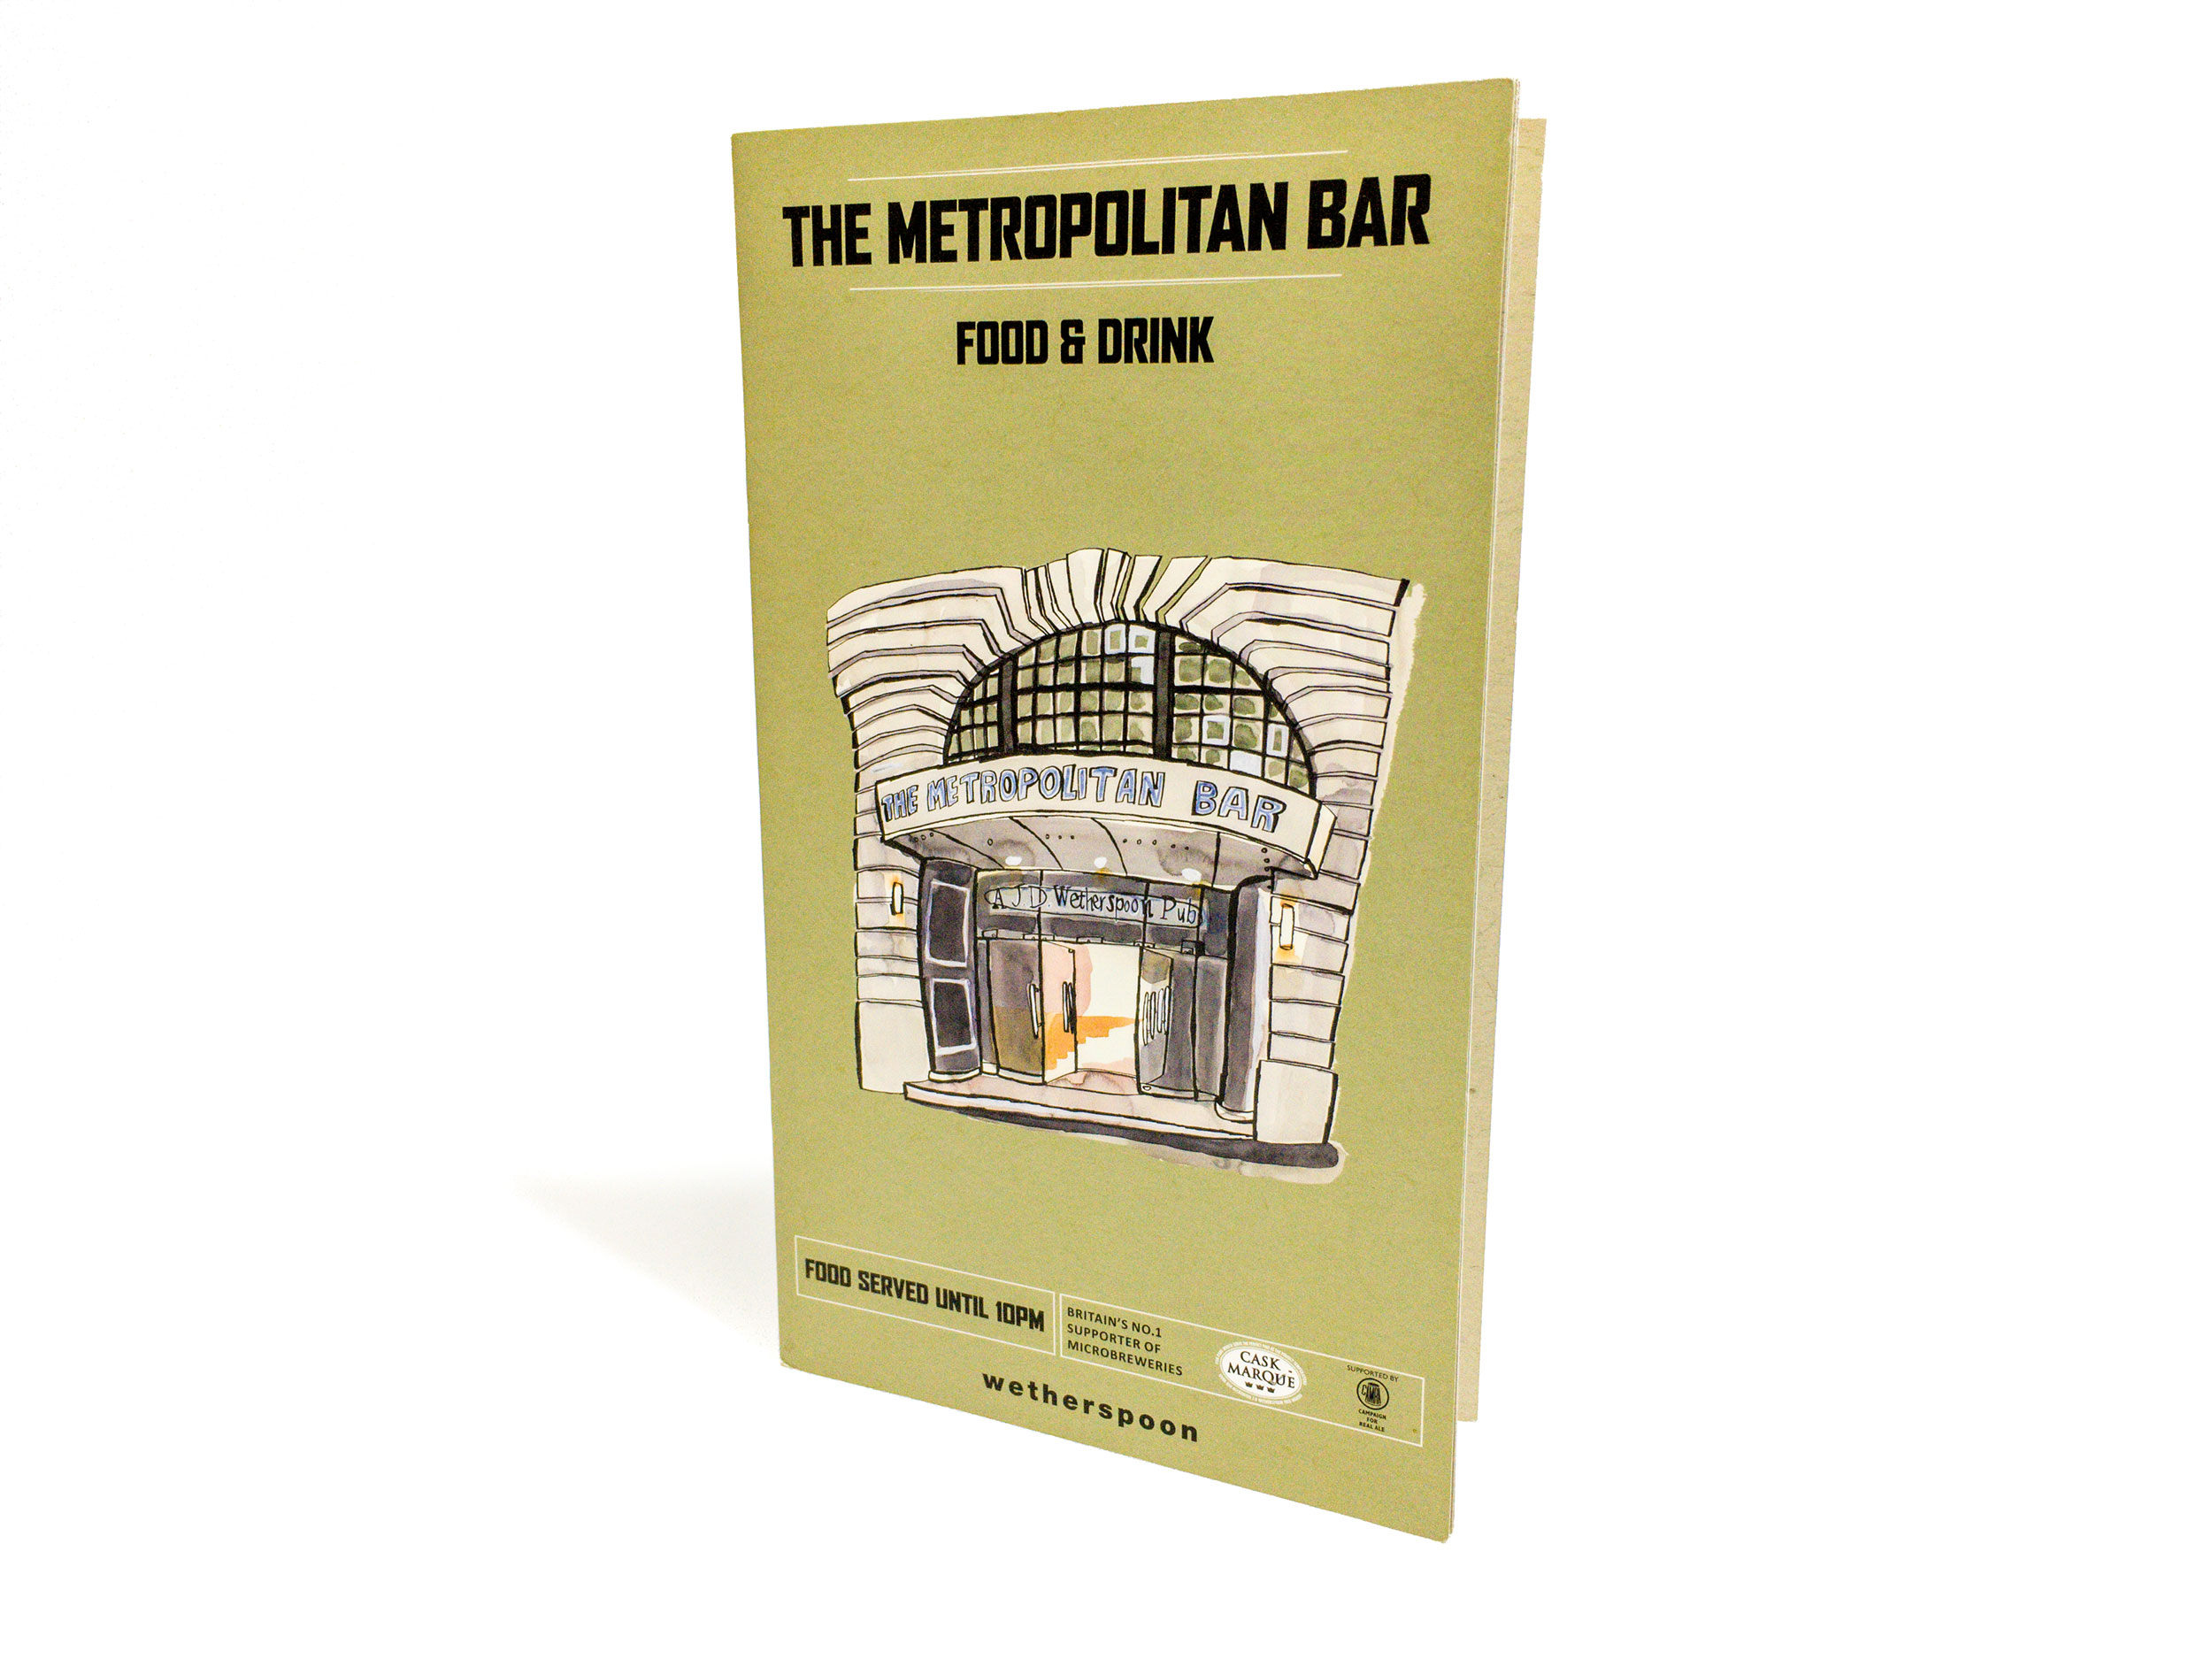 Wetherspoon menu illustrations by James Oses, image 5